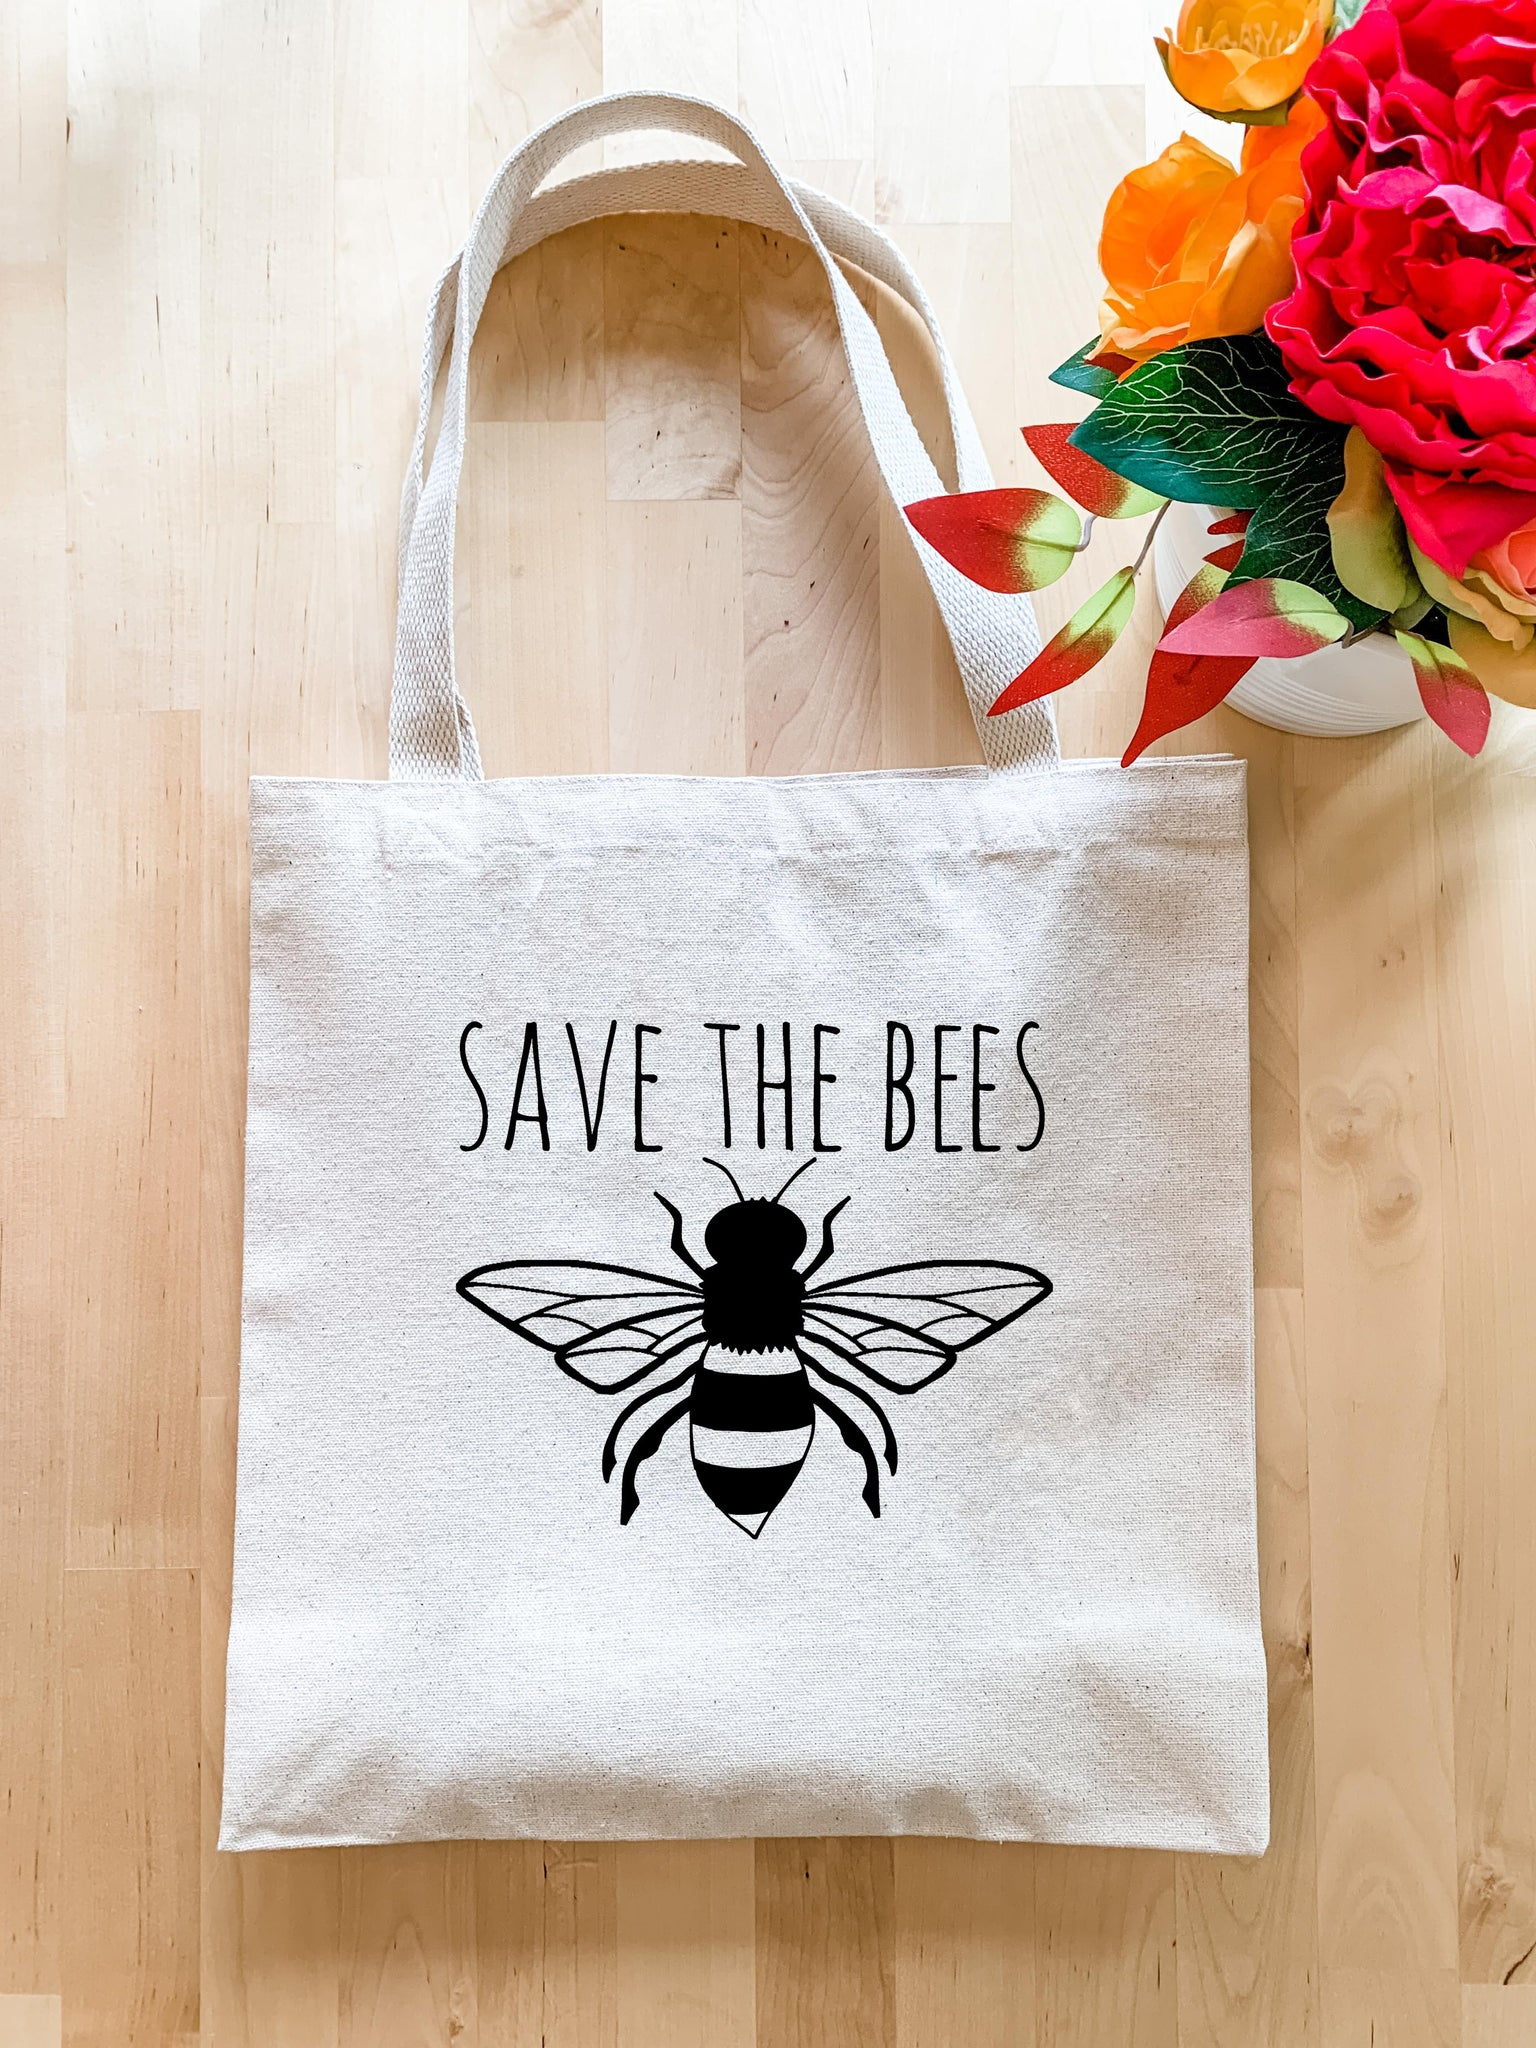 Save The Bees - Tote Bag - MoonlightMakers